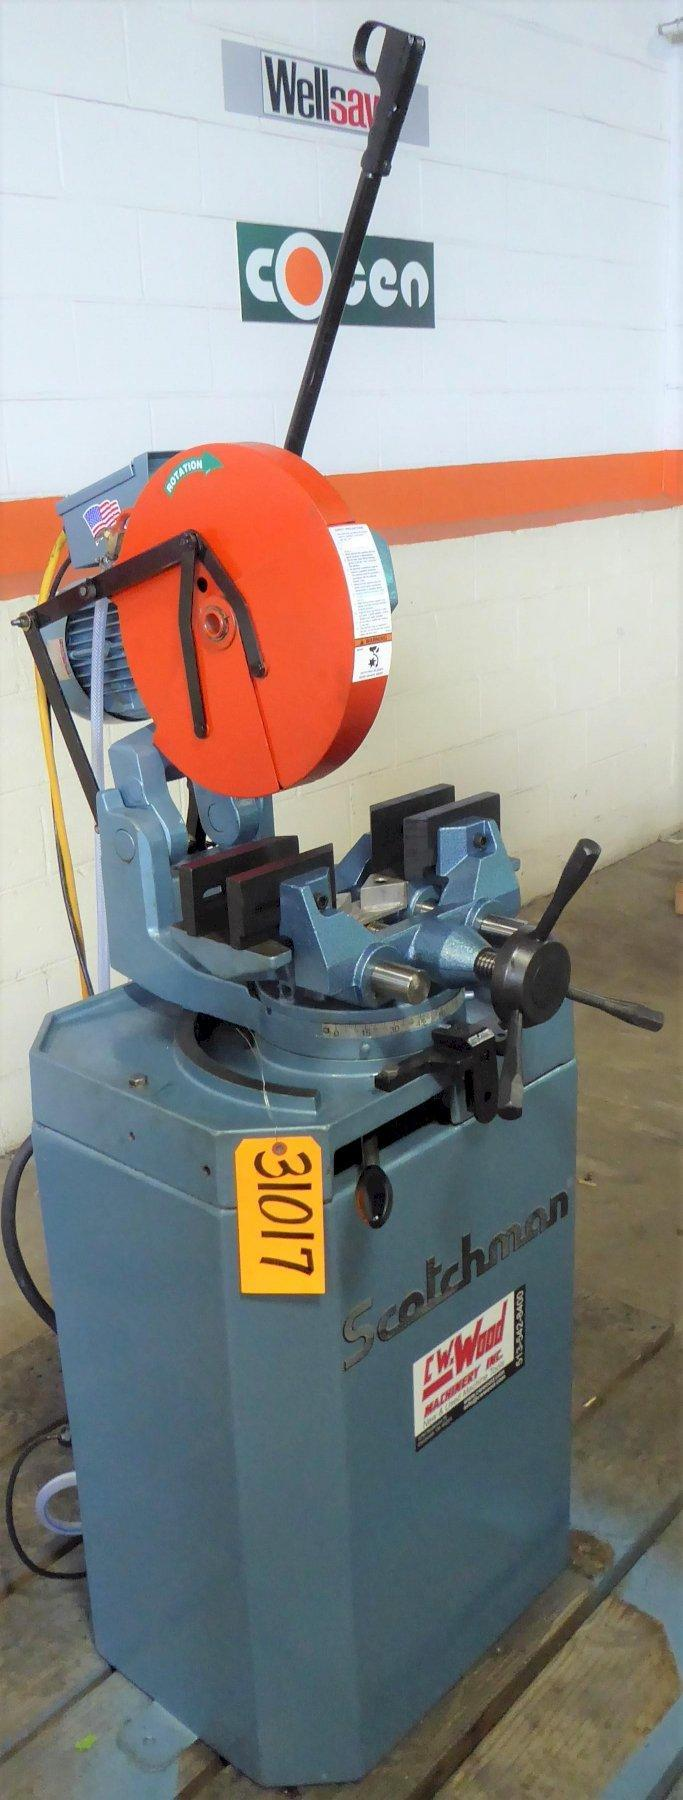 14″ SCOTCHMAN Cold Saw CP0 350LT, Miter, 4-7/8″ Tube, 2″ Solids,  2 HP, Reconditioned